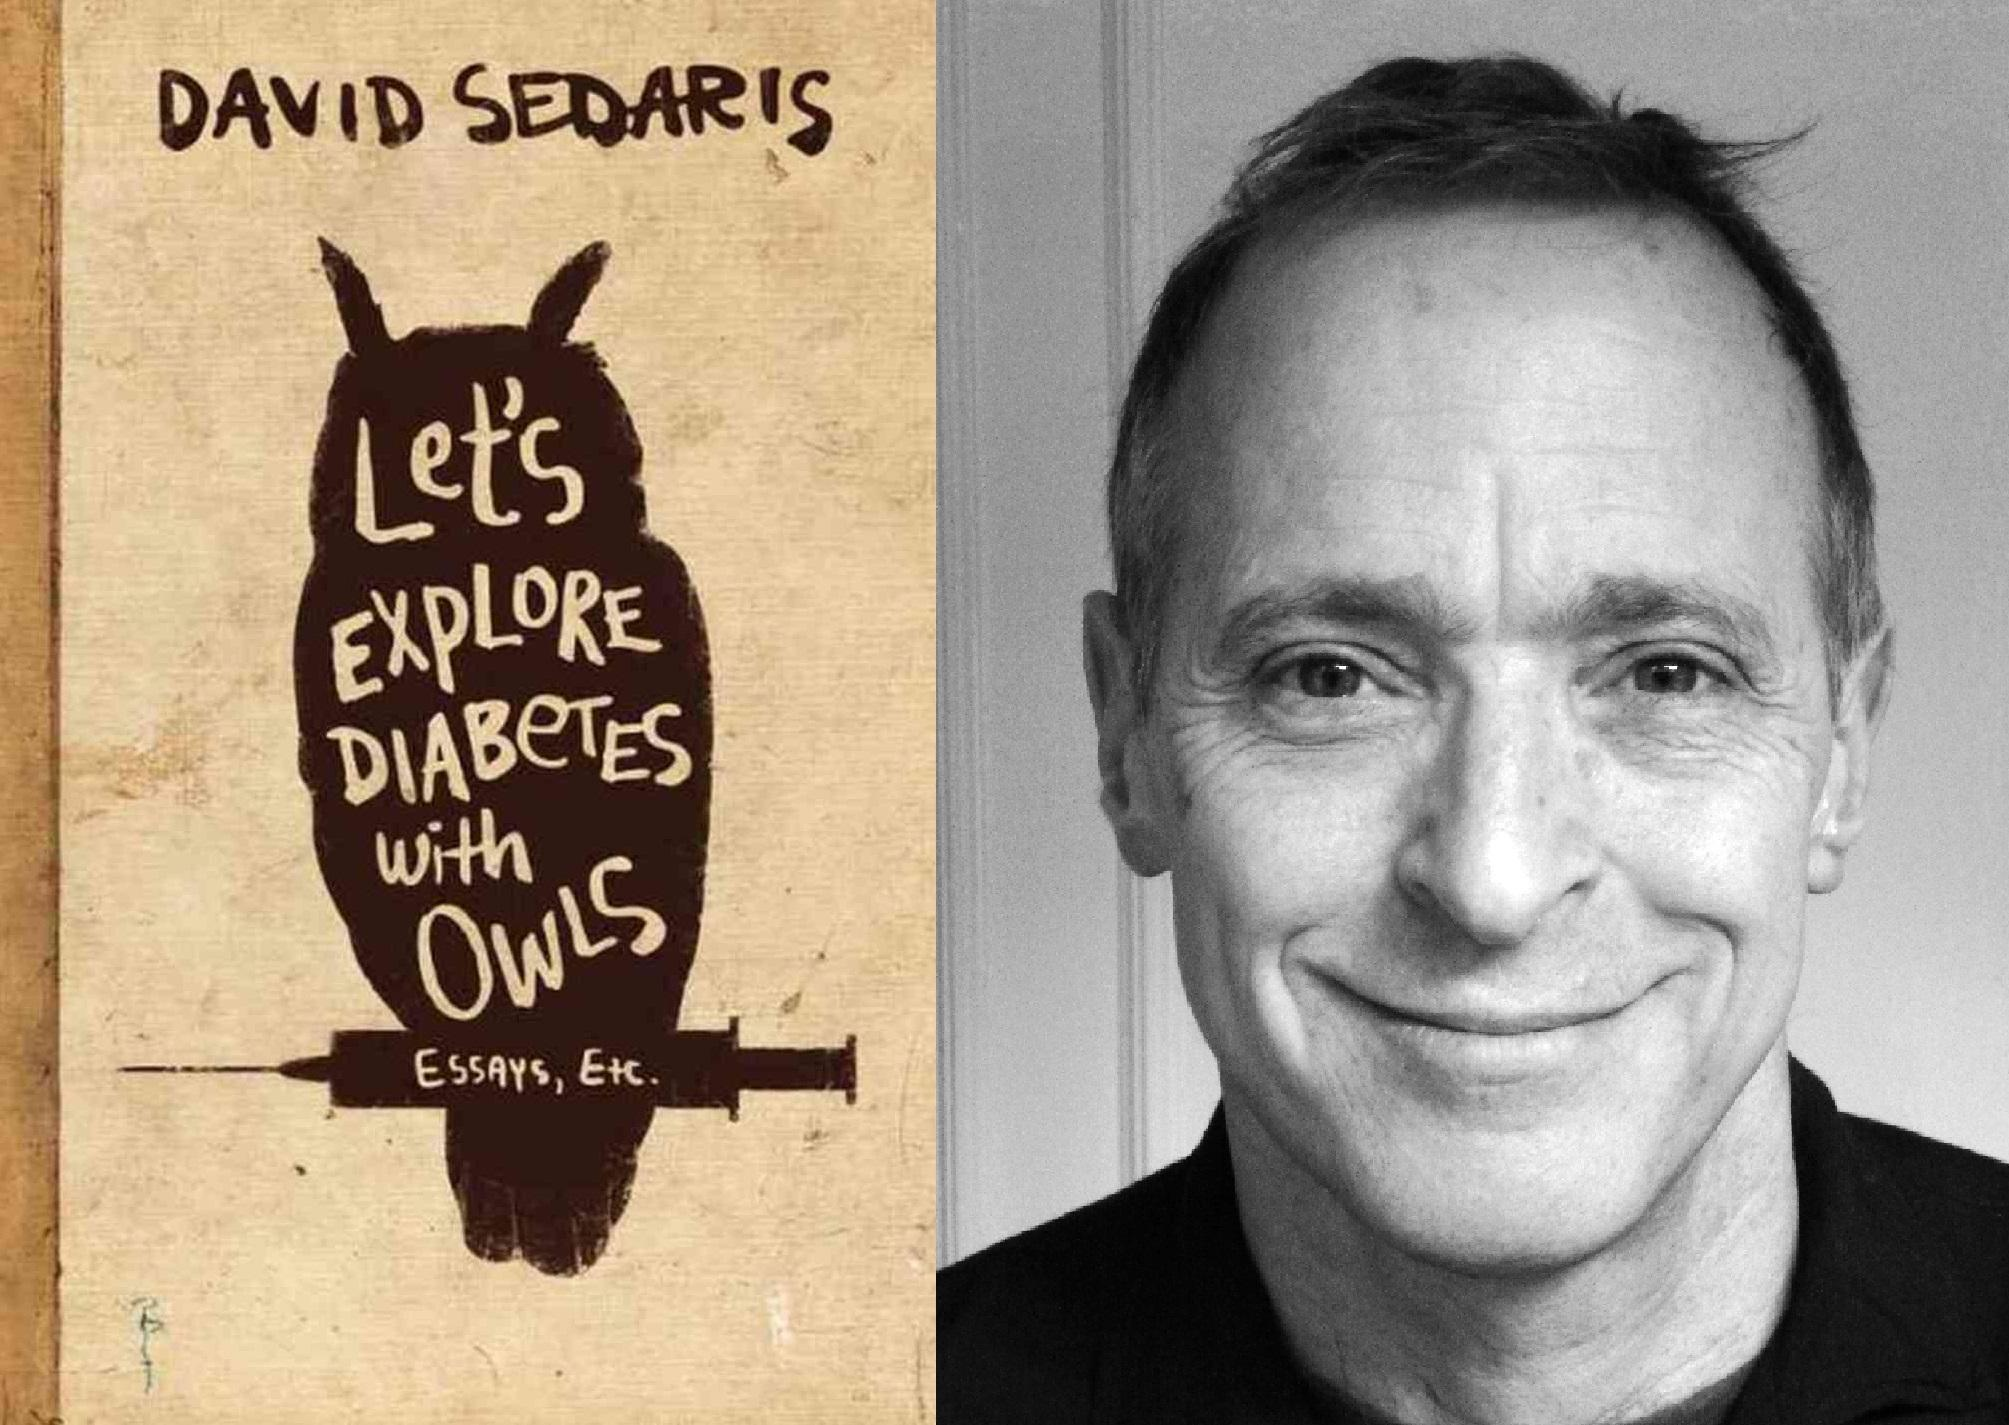 save the date for david sedaris 4 21 at the peabody opera house save the date for david sedaris 4 21 at the peabody opera house